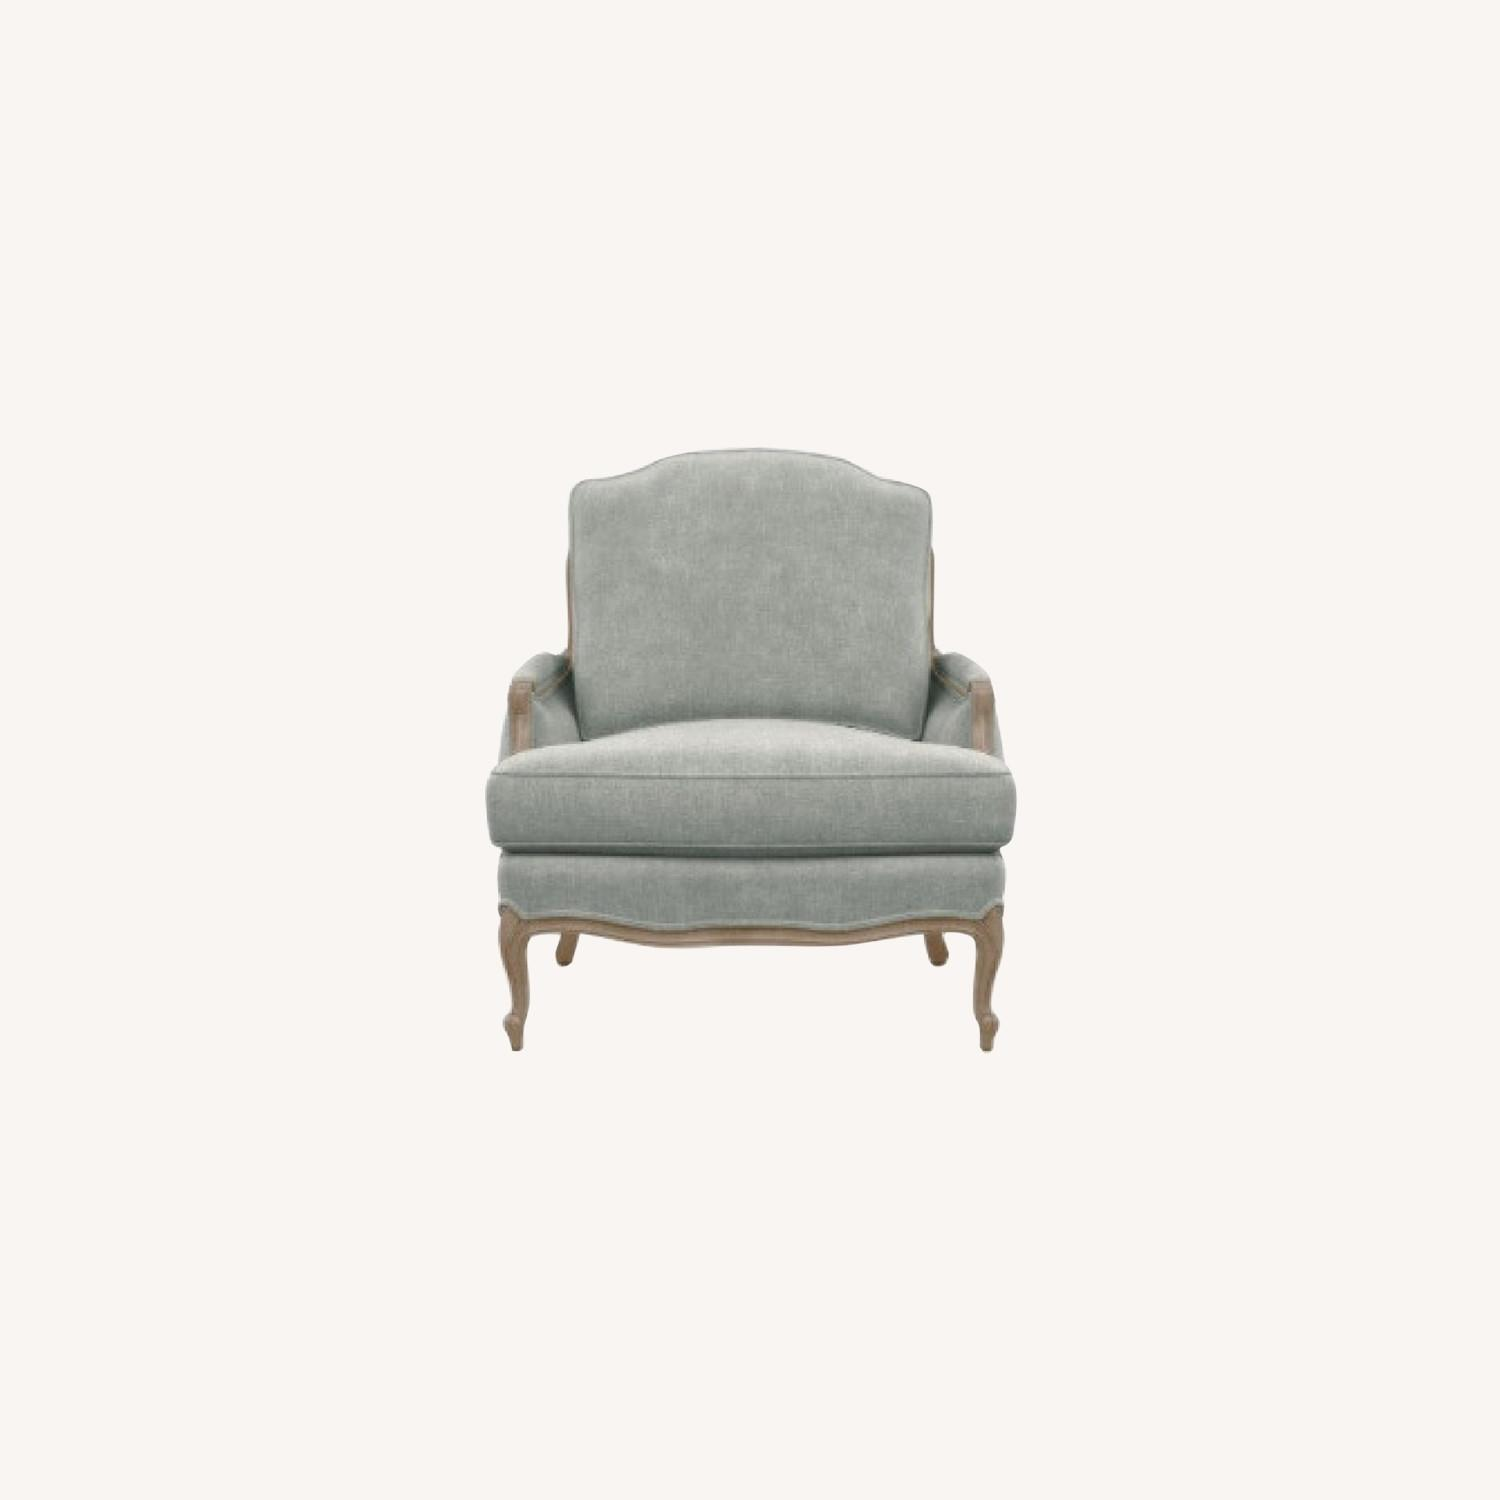 Ethan Allen Gray Versailles Accent Chair - image-0